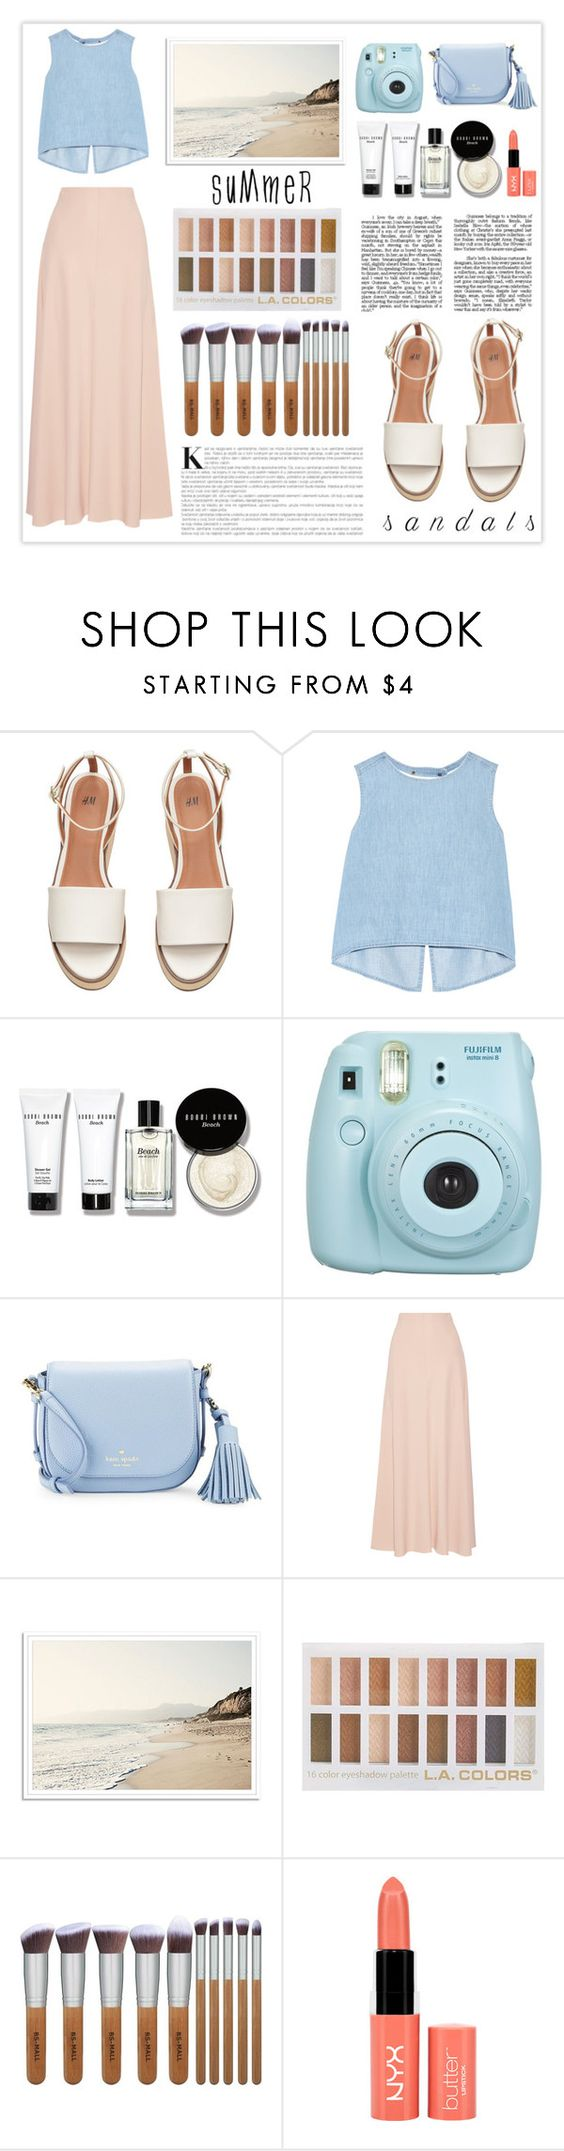 """""""cool for the summer"""" by littleheartz ❤ liked on Polyvore featuring Steve J & Yoni P, Bobbi Brown Cosmetics, Kate Spade, The Row, NYX and summersandals"""